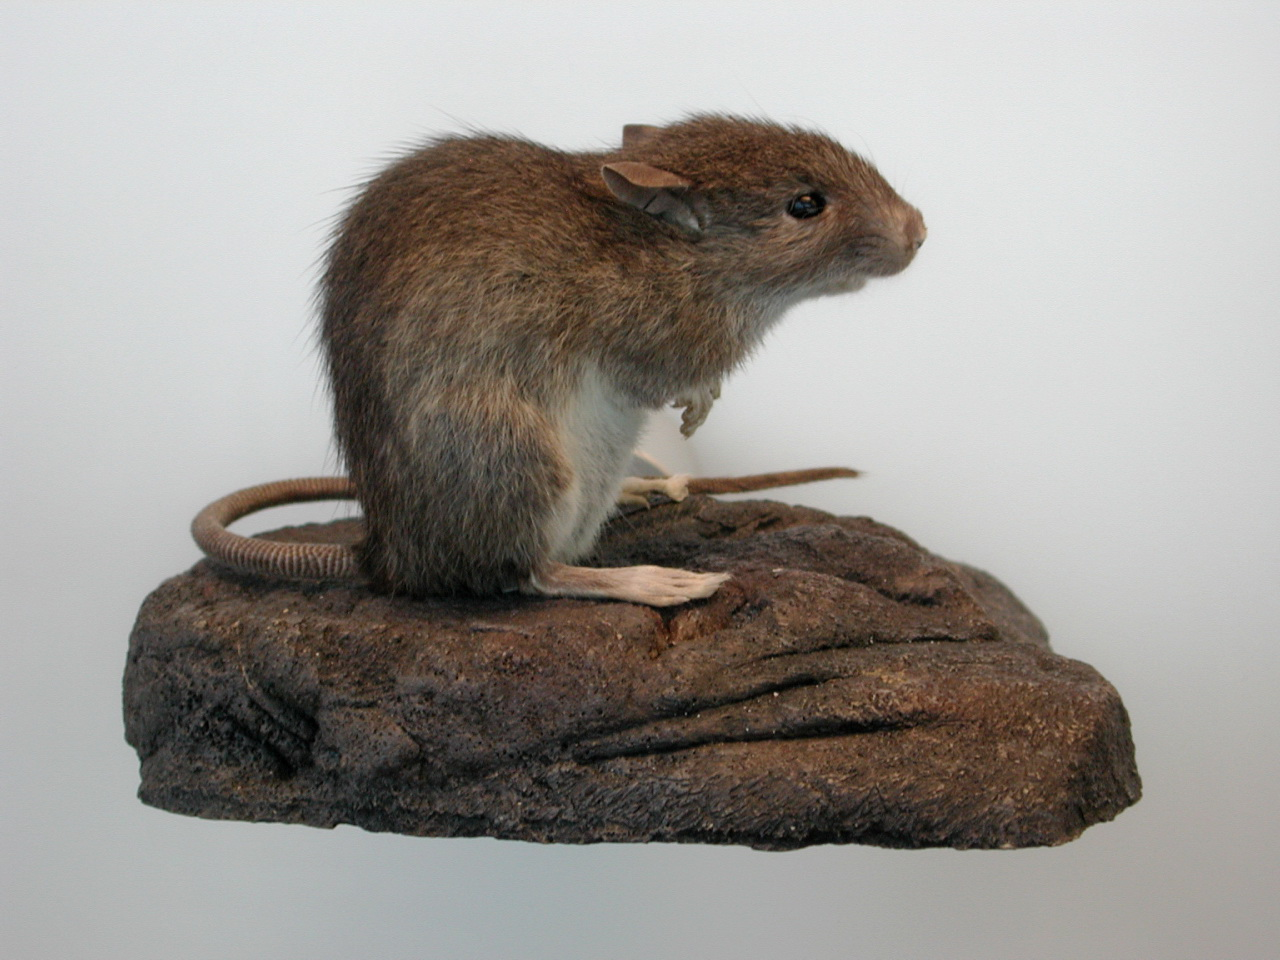 A Pacific Rat (photograph of museum specimen)